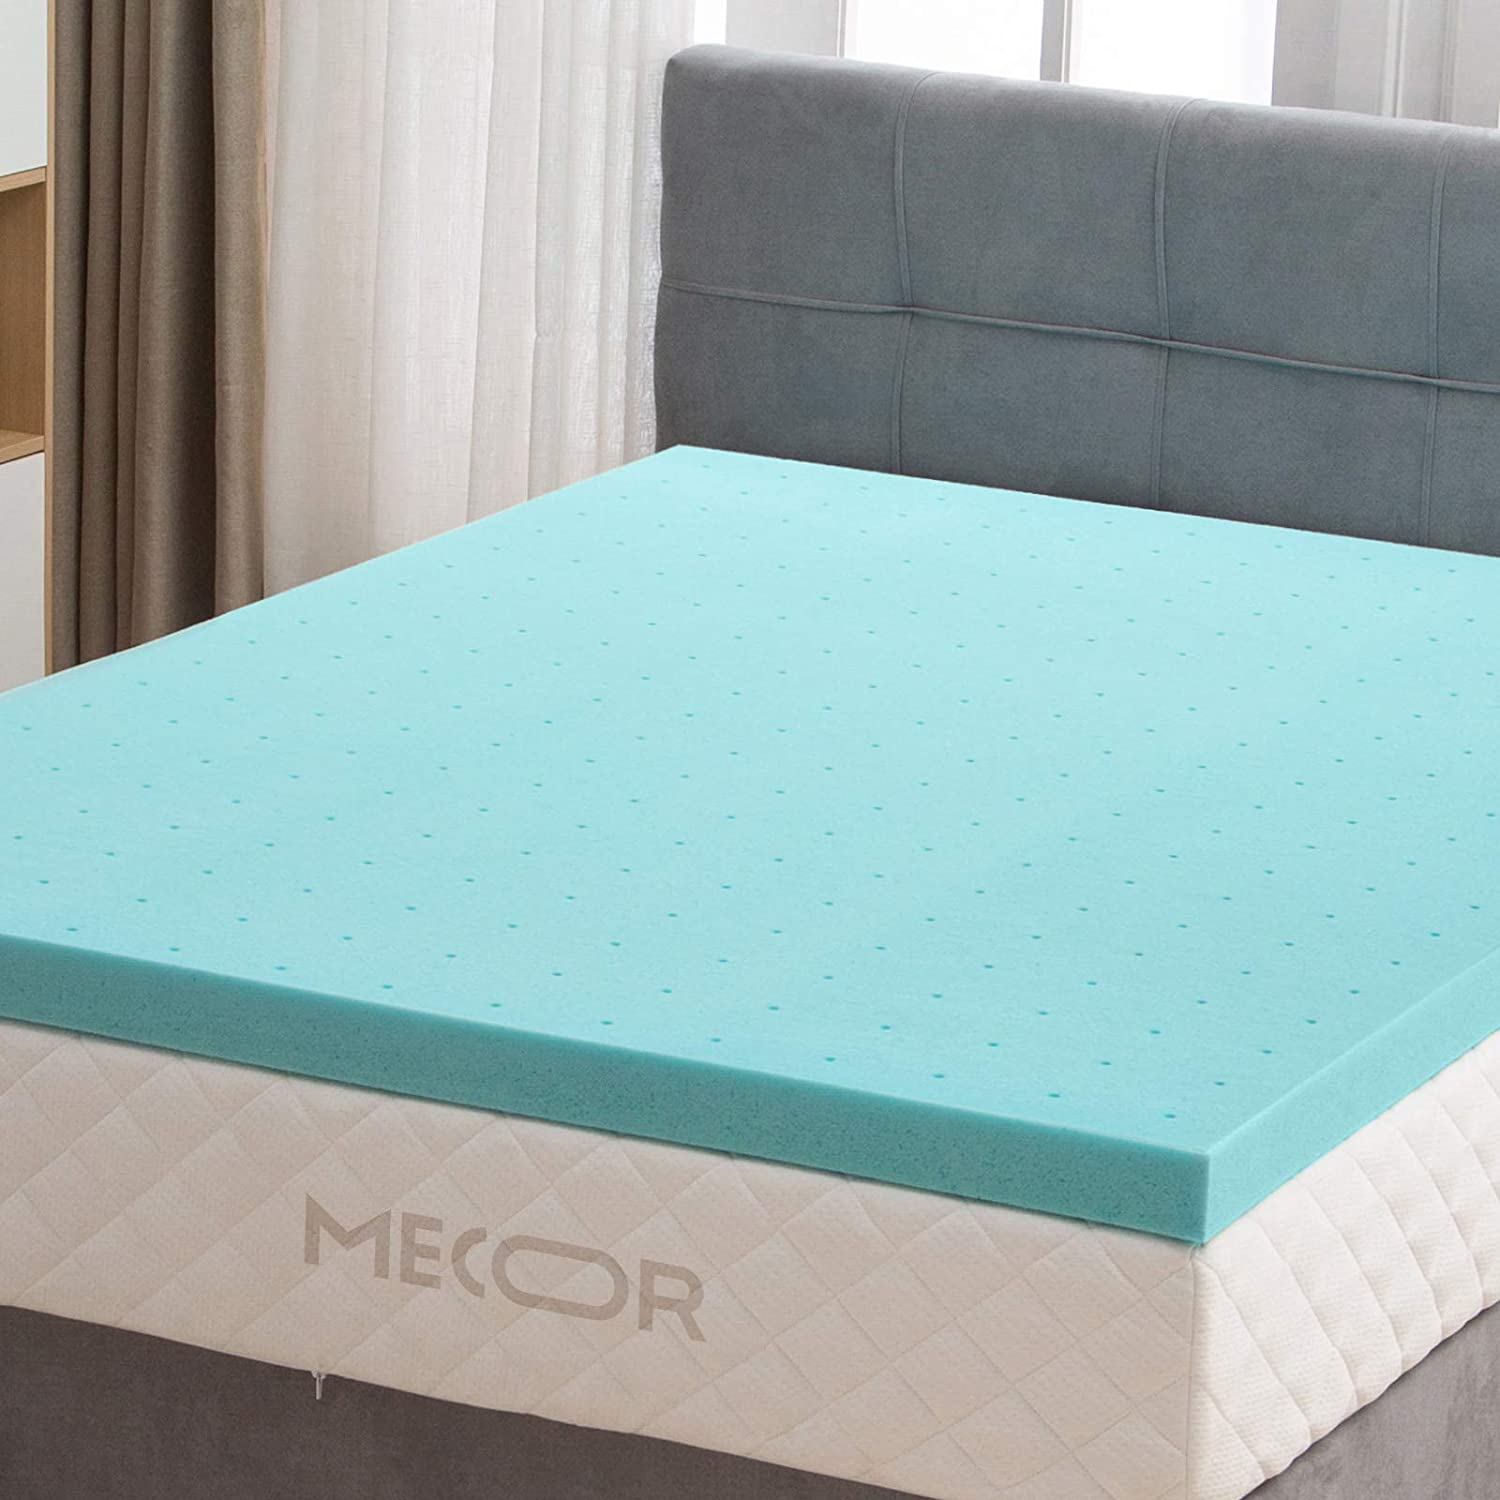 mecor 3 Fort Worth Mall Inch in Mattress Topper Infused Over item handling ☆ Size-100% Queen Me Gel